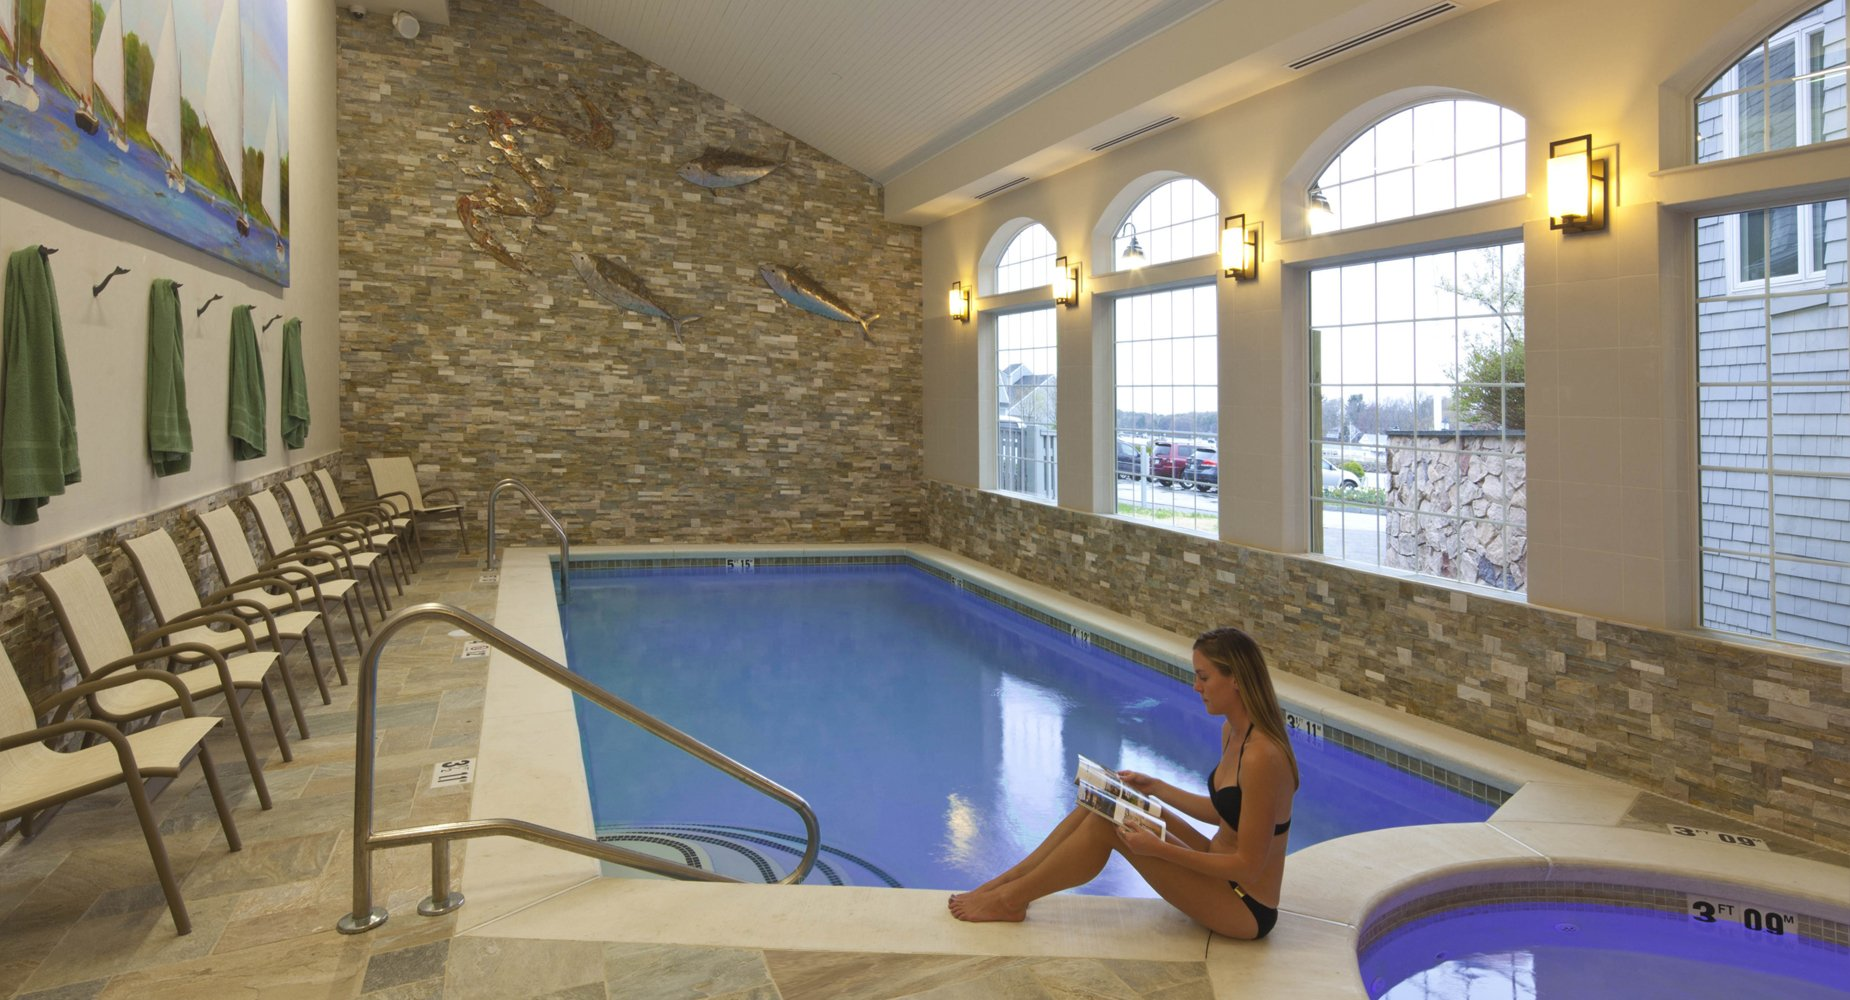 This is our indoor pool and hot tub, totally reconstructed in 2012.